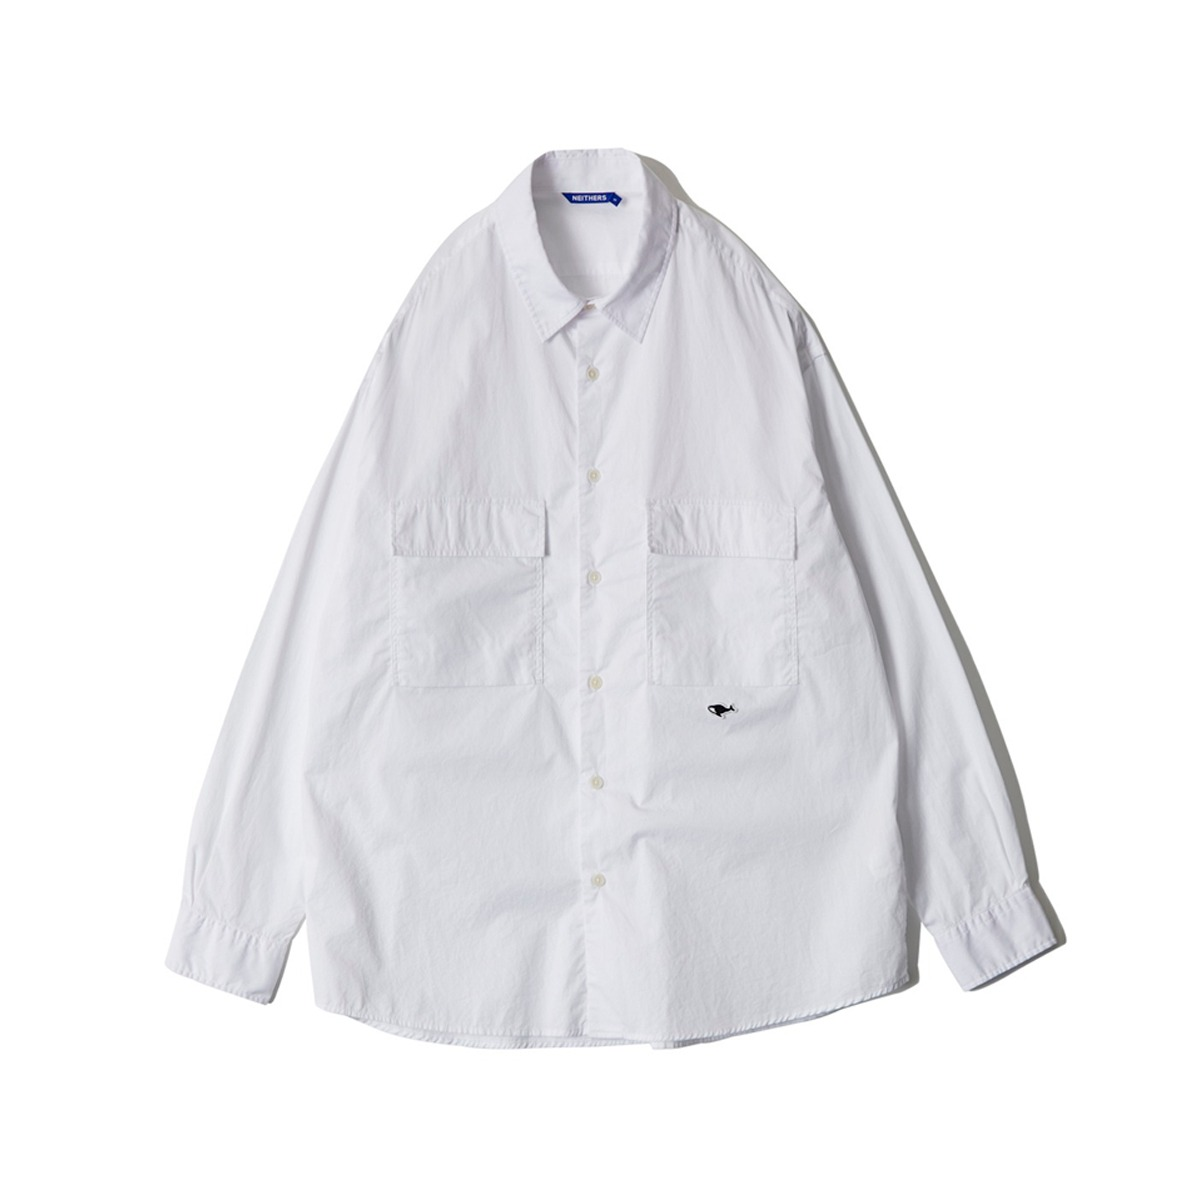 [NEITHERS] D5009-1 S 2-POCKET WIDE SHIRT 'WHITE'